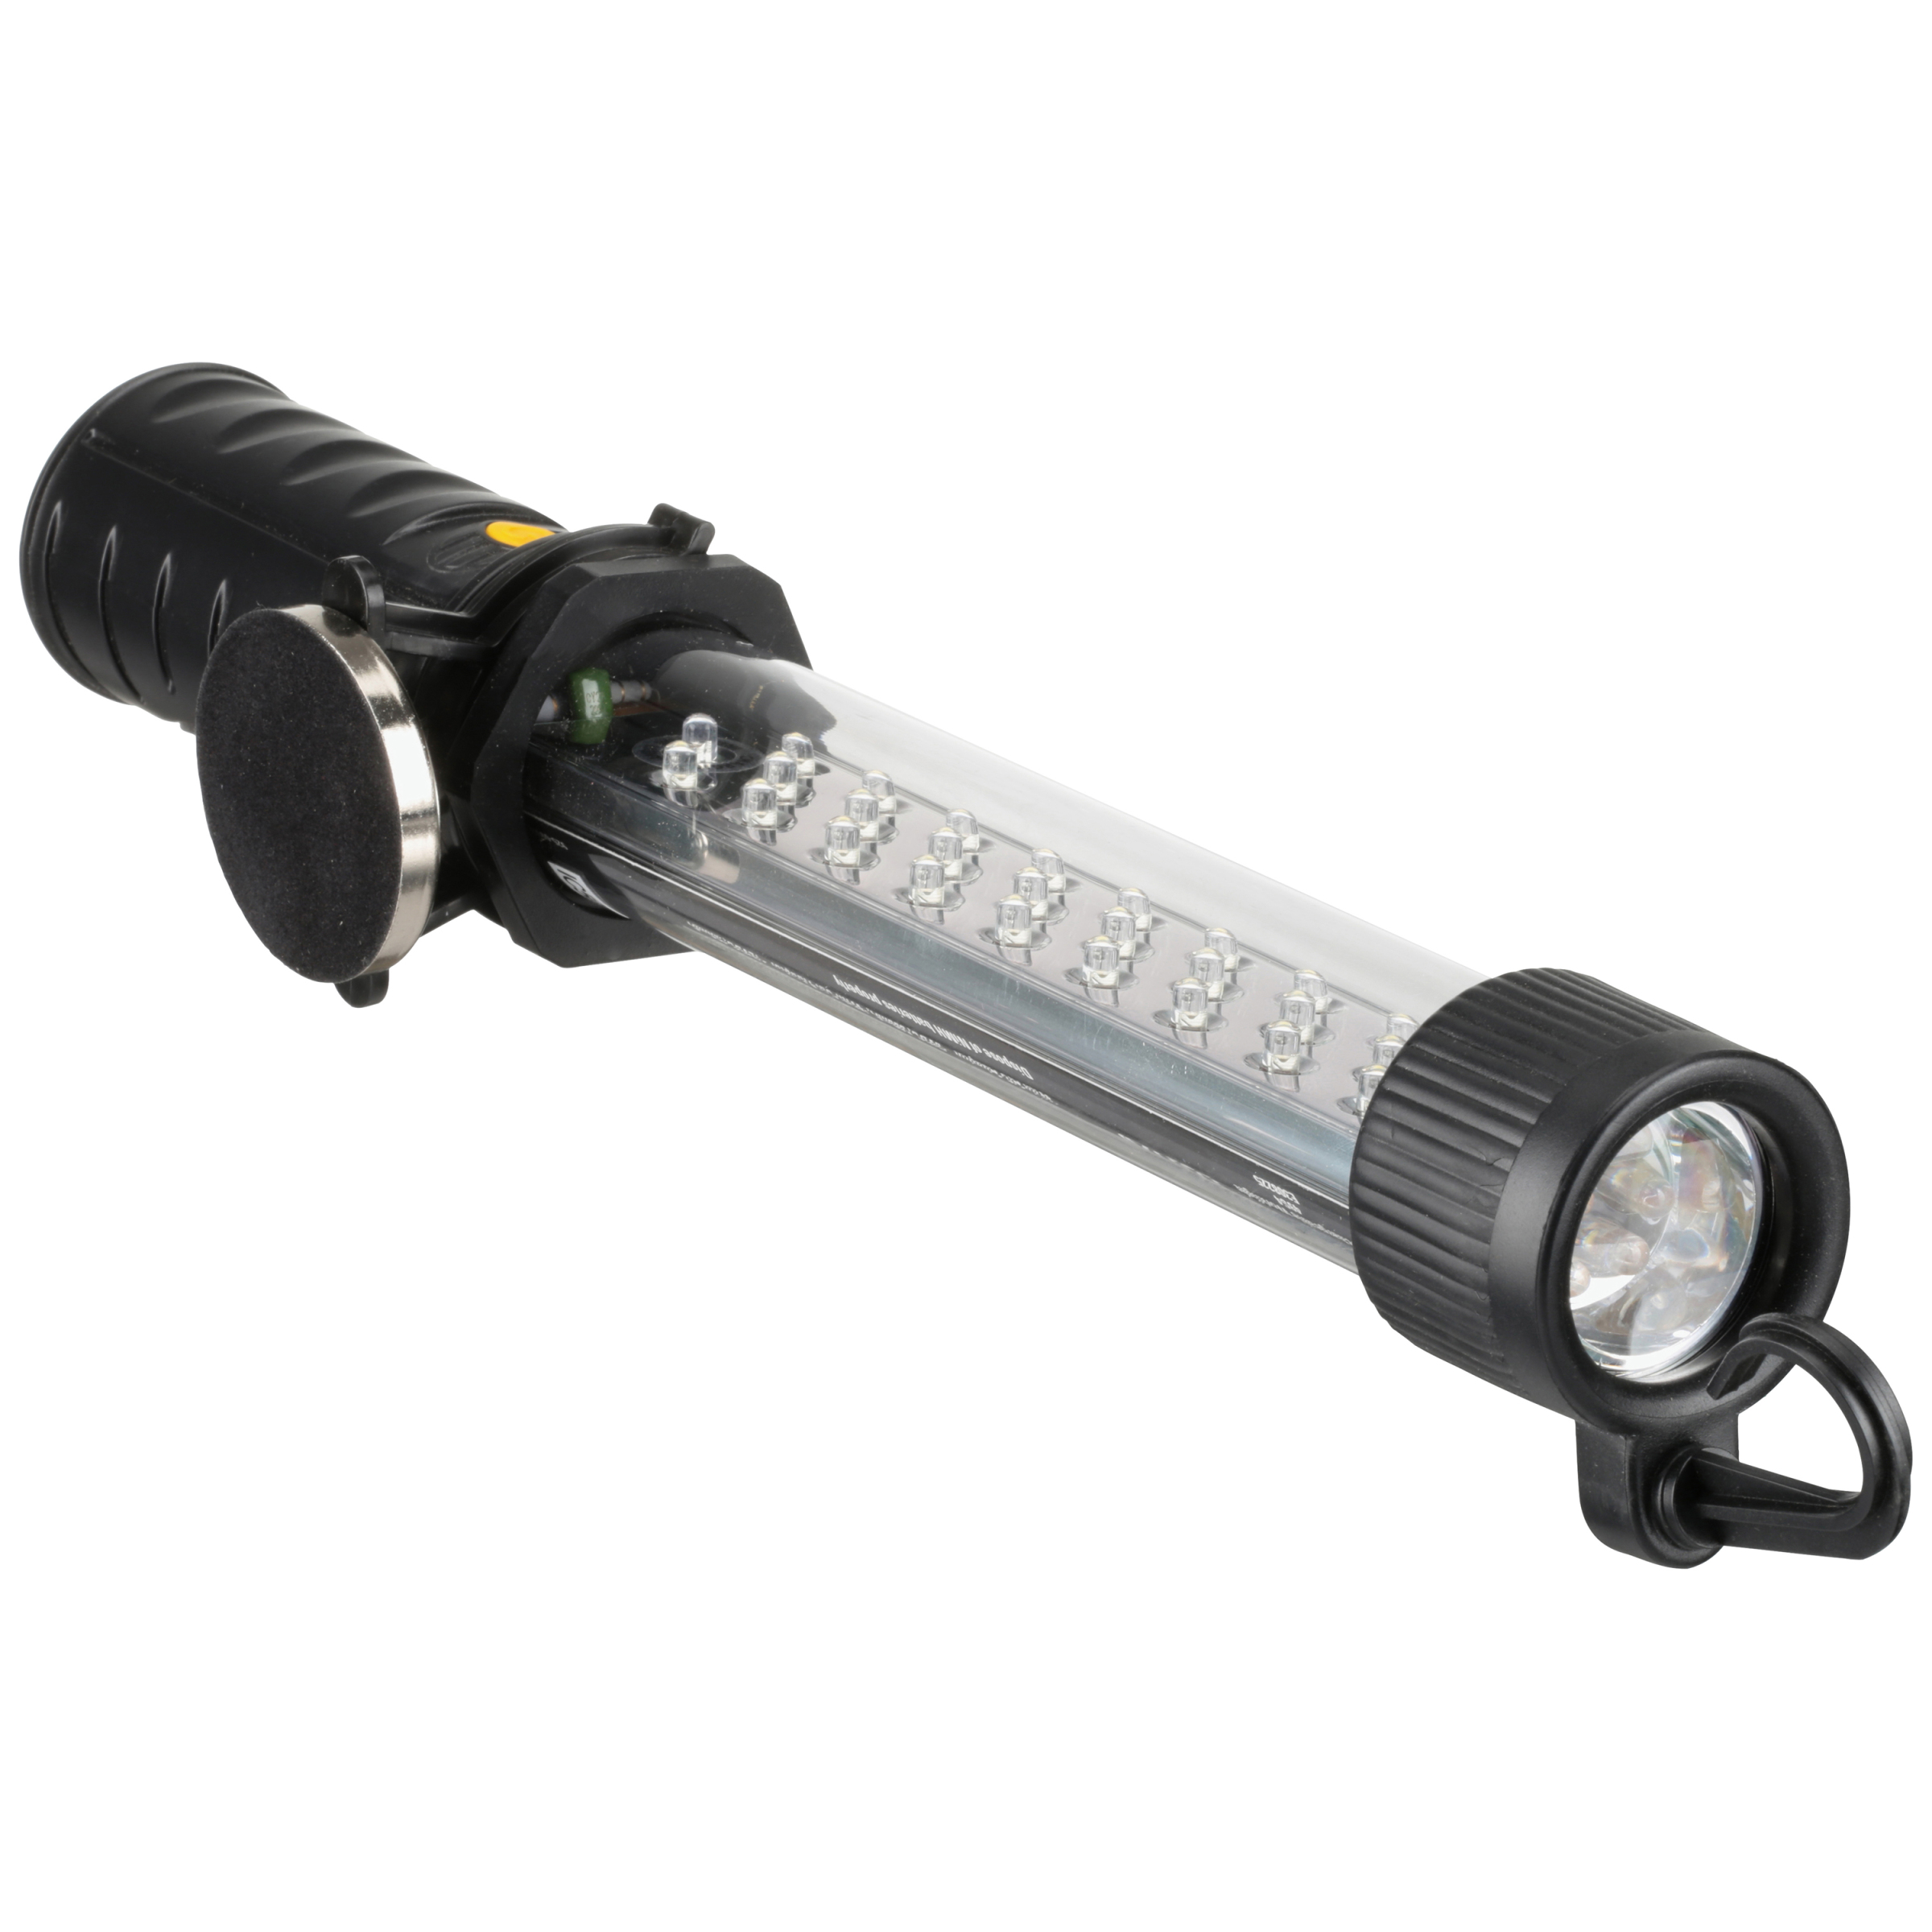 Might-D-Light 35 LED Rechargeable Work Light with AC/DC Charging Adapters